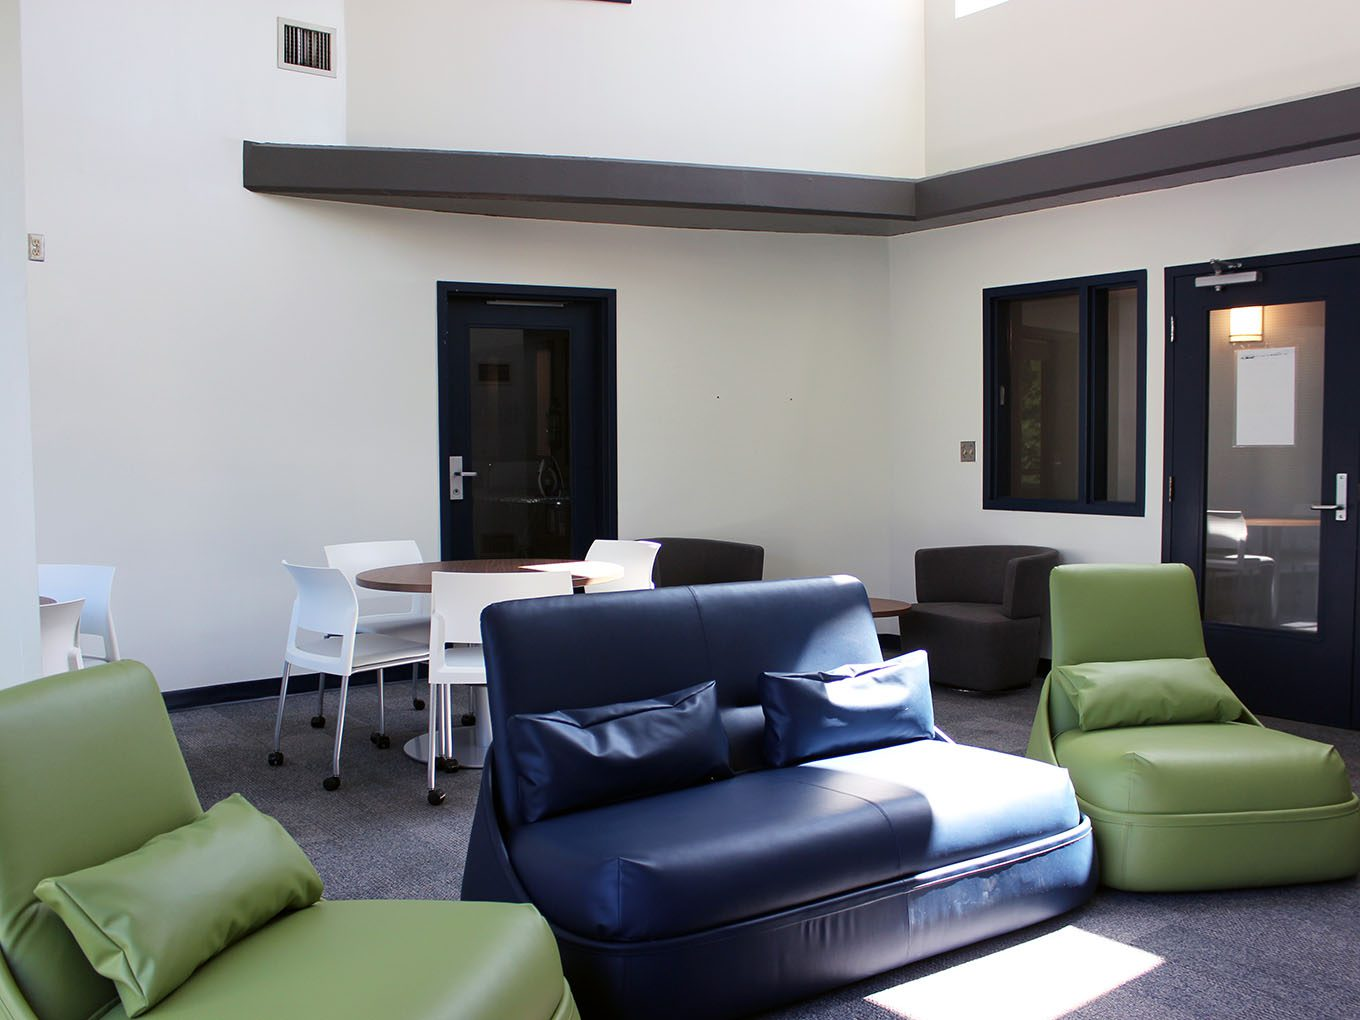 Suites and Amenities - Common room